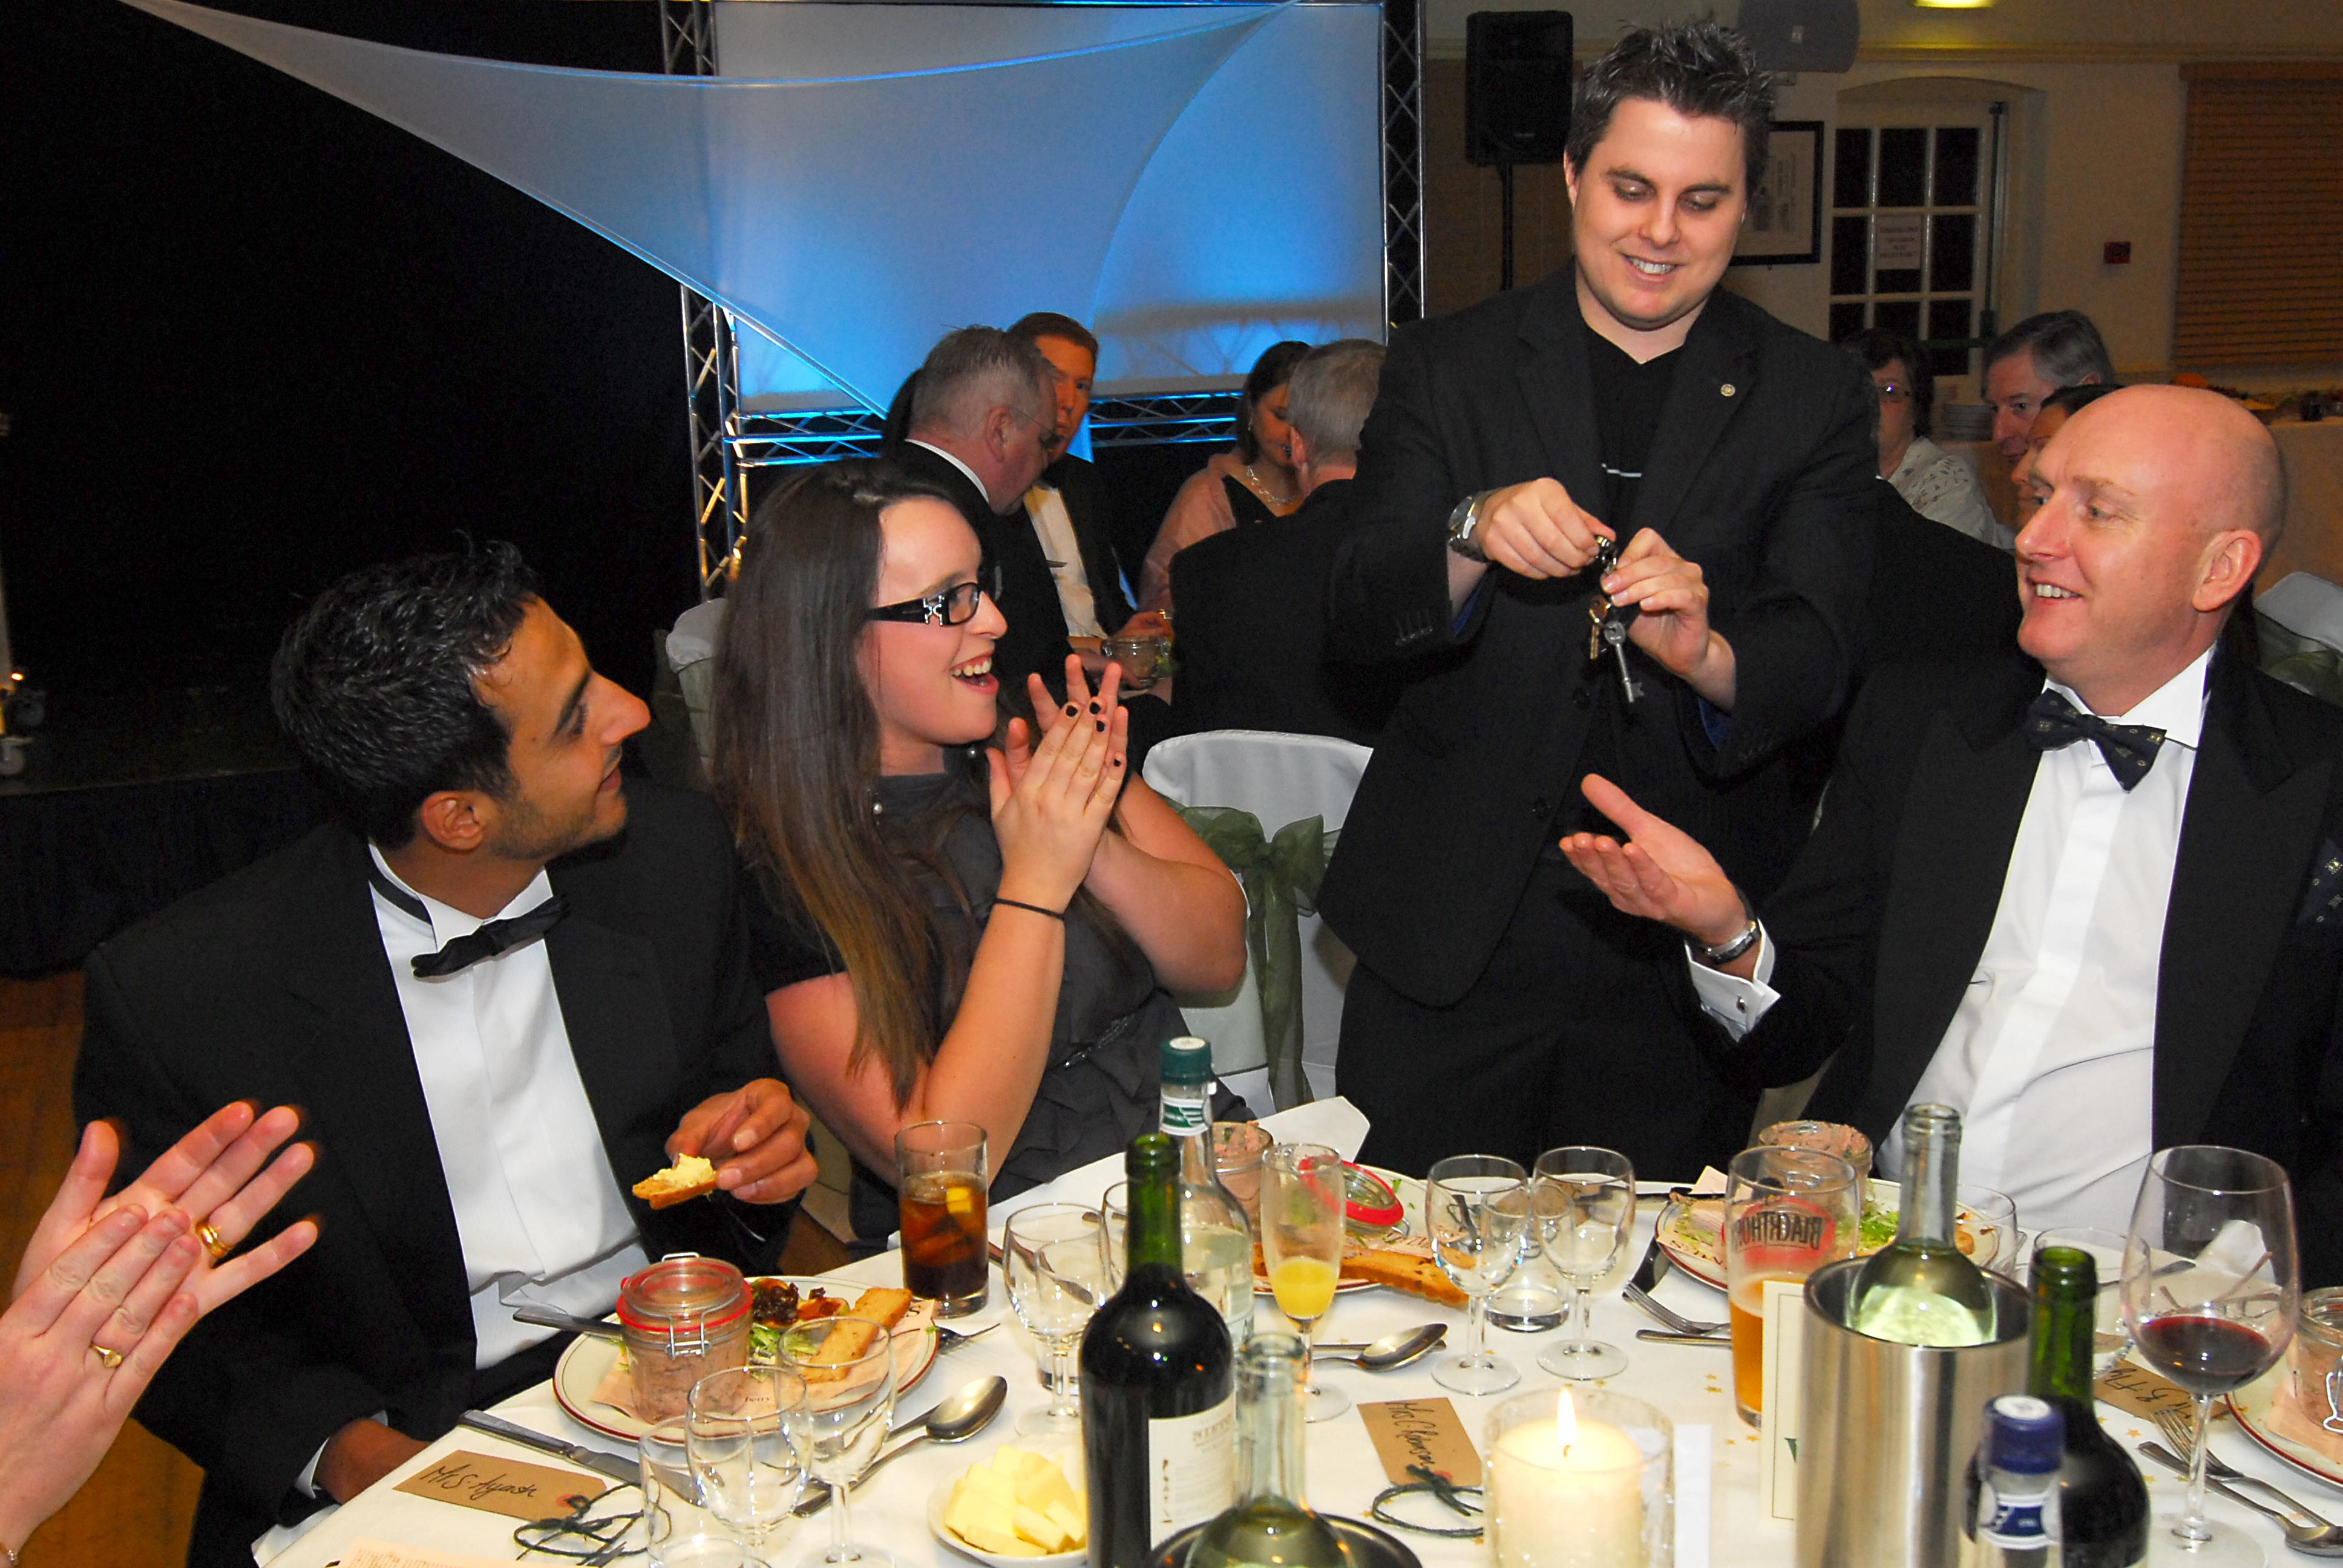 London Magician amazing guests at a corporate event at the Portsmouth Park Hotel in Portsmouth